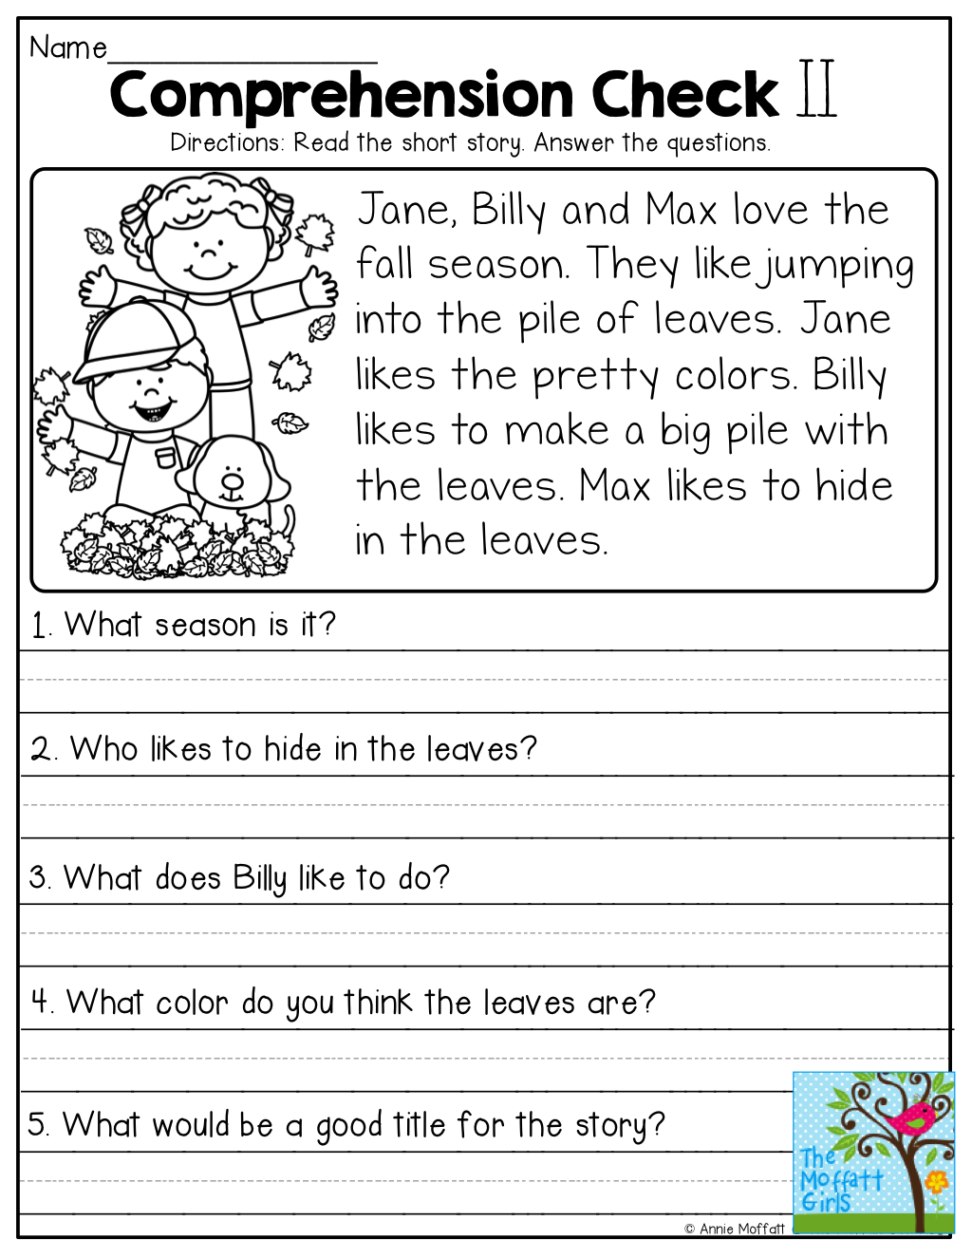 Worksheet. Free Printable Reading Comprehension Worksheets - Free Printable Reading Comprehension Worksheets For Adults